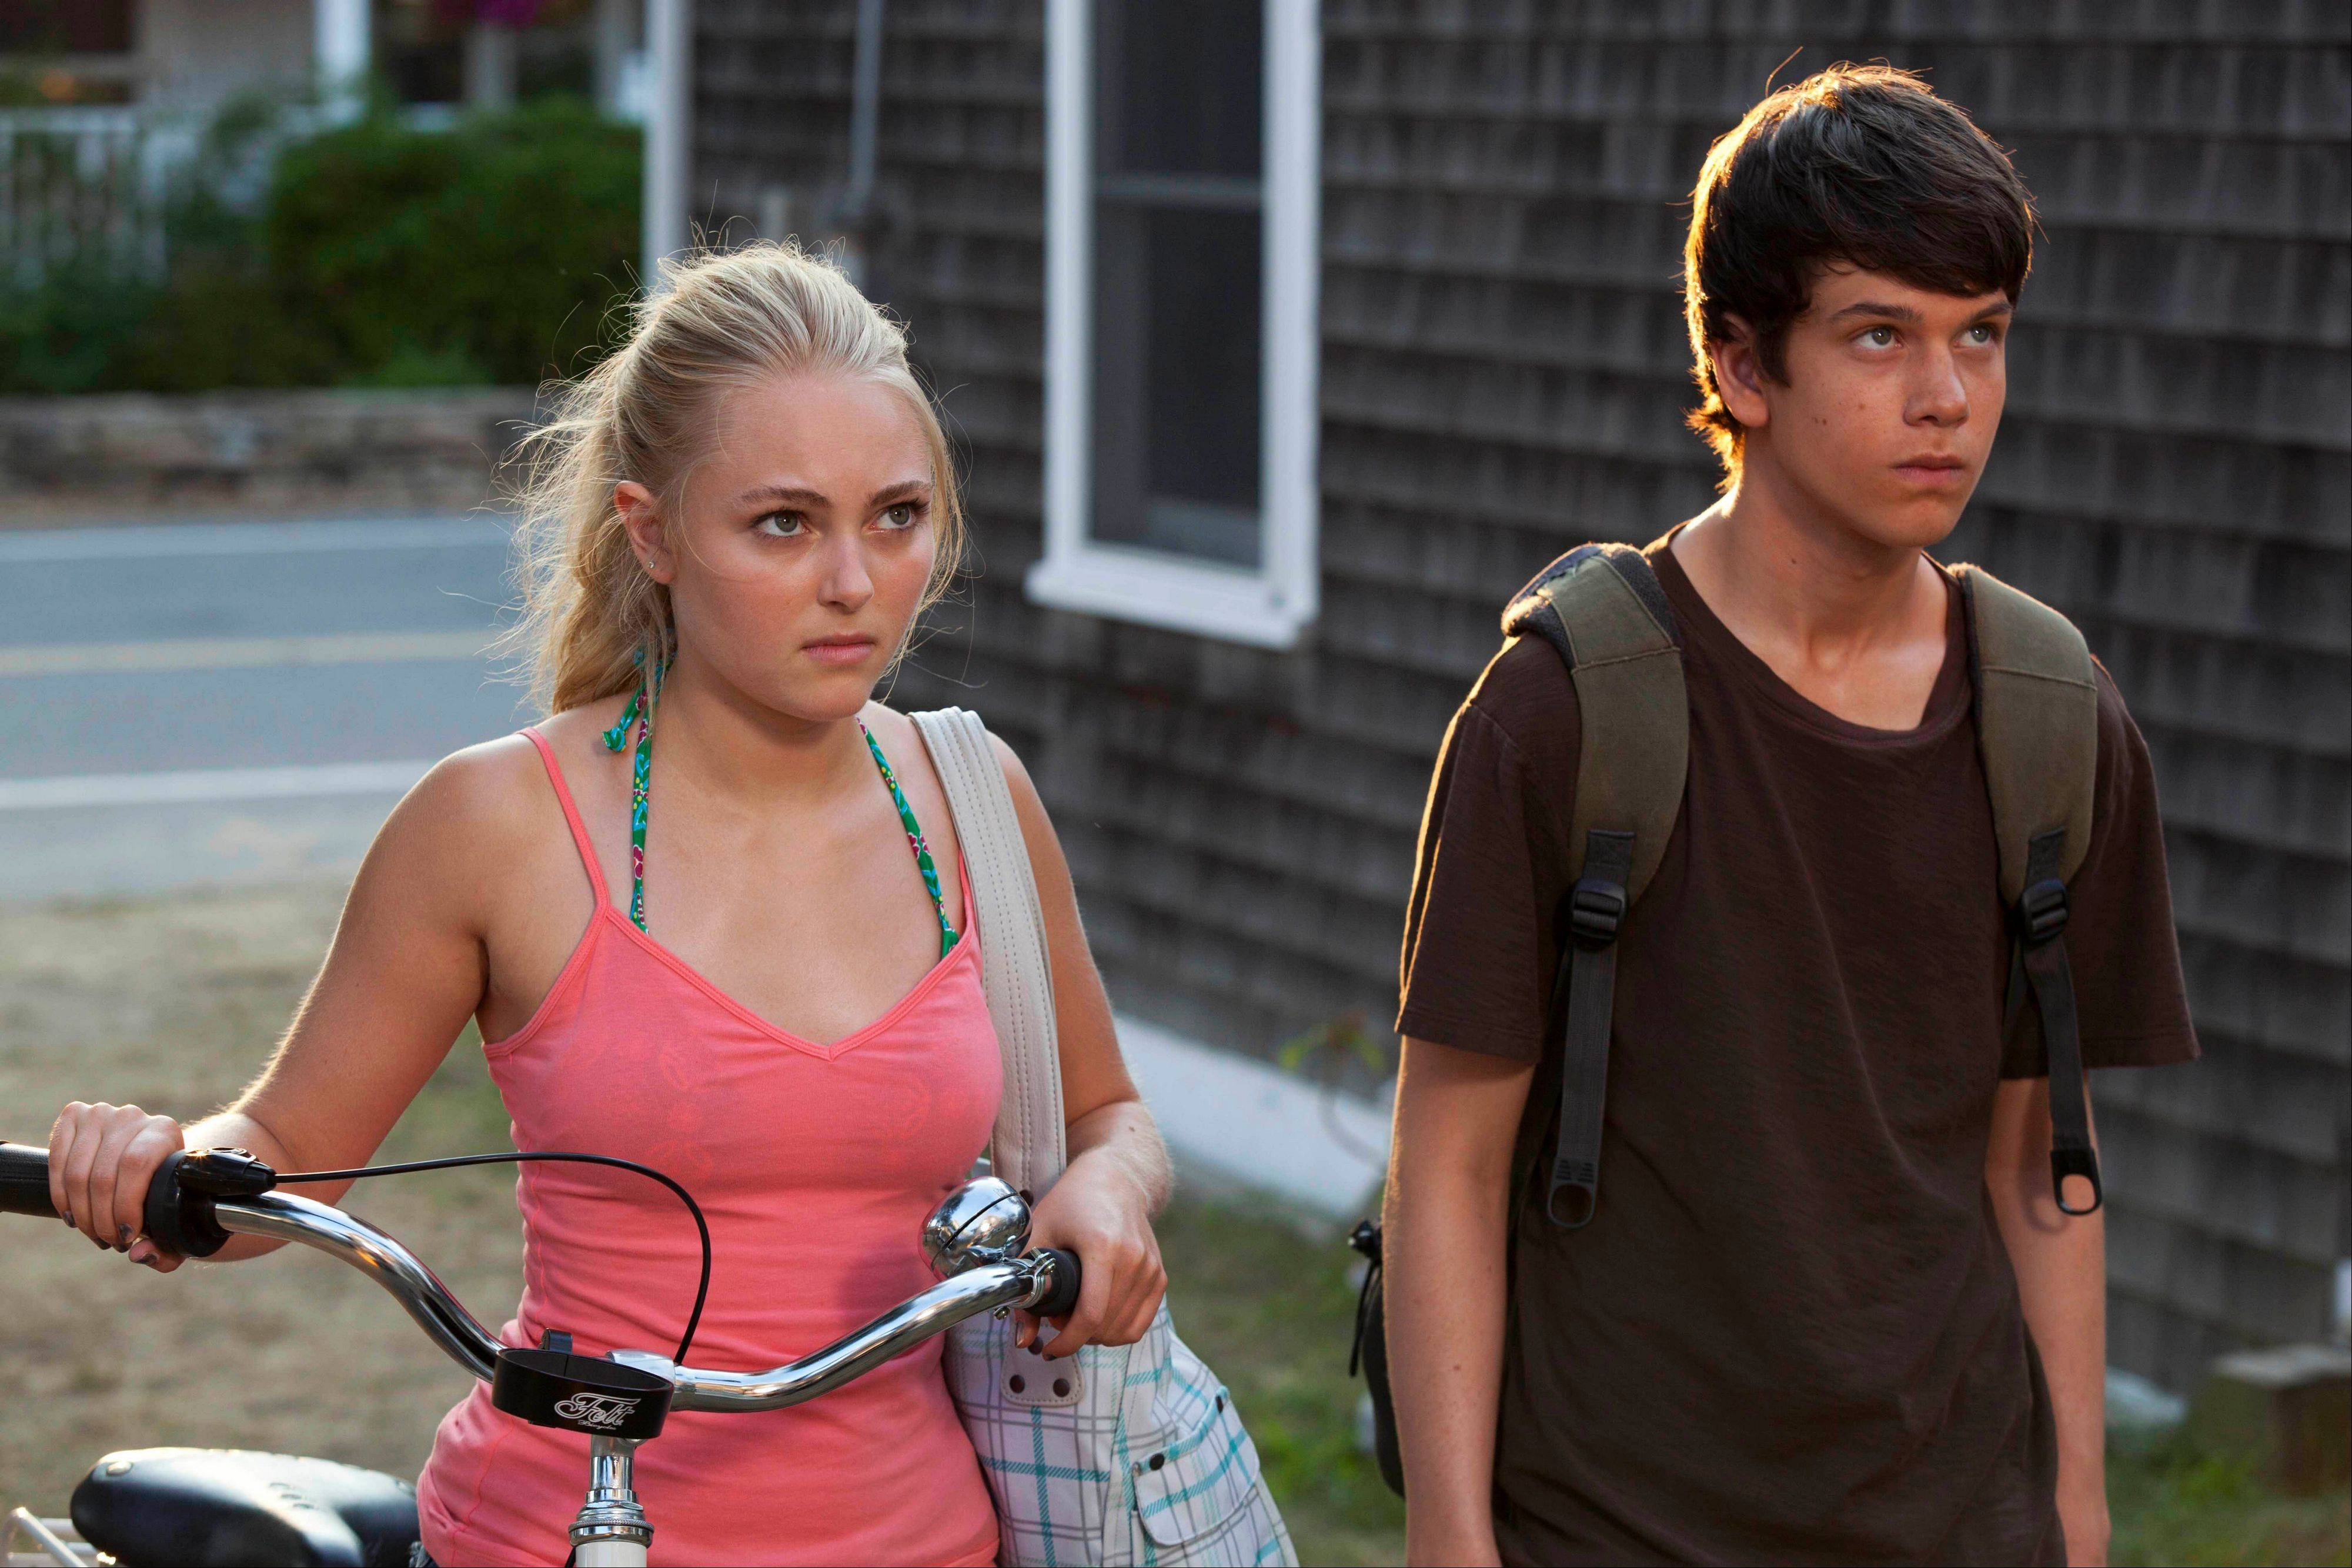 AnnaSophia Robb, left, and Liam James star in �The Way, Way Back,� written by Nat Faxon and Jim Rash.